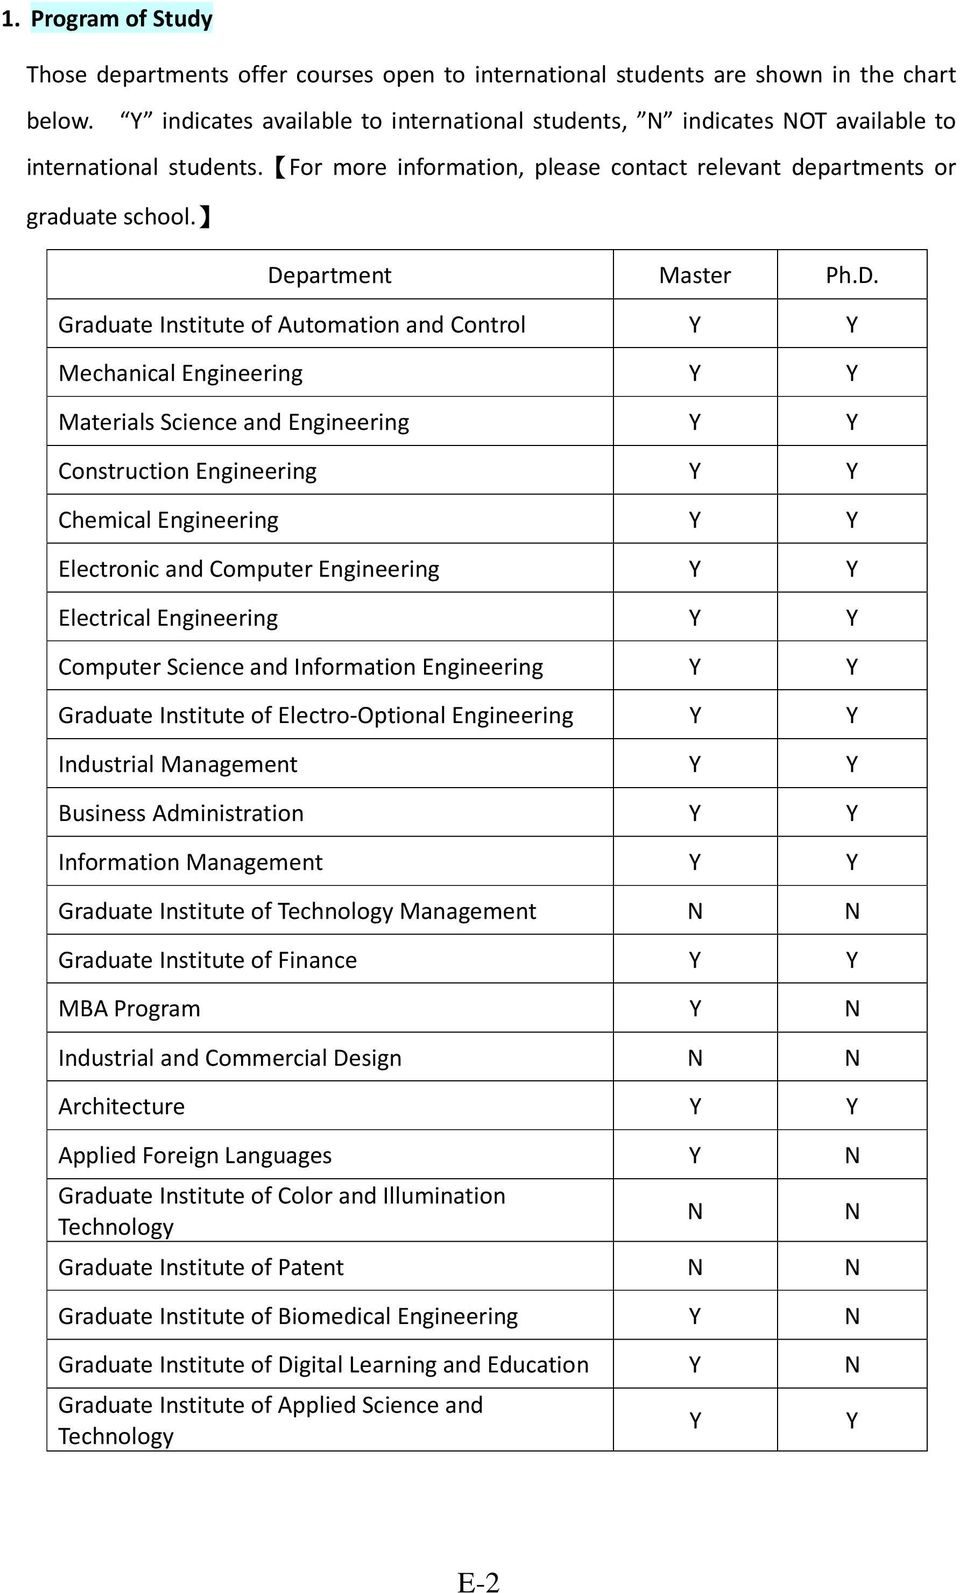 Department Master Ph.D. Graduate Institute of Automation and Control Y Y Mechanical Engineering Y Y Materials Science and Engineering Y Y Construction Engineering Y Y Chemical Engineering Y Y